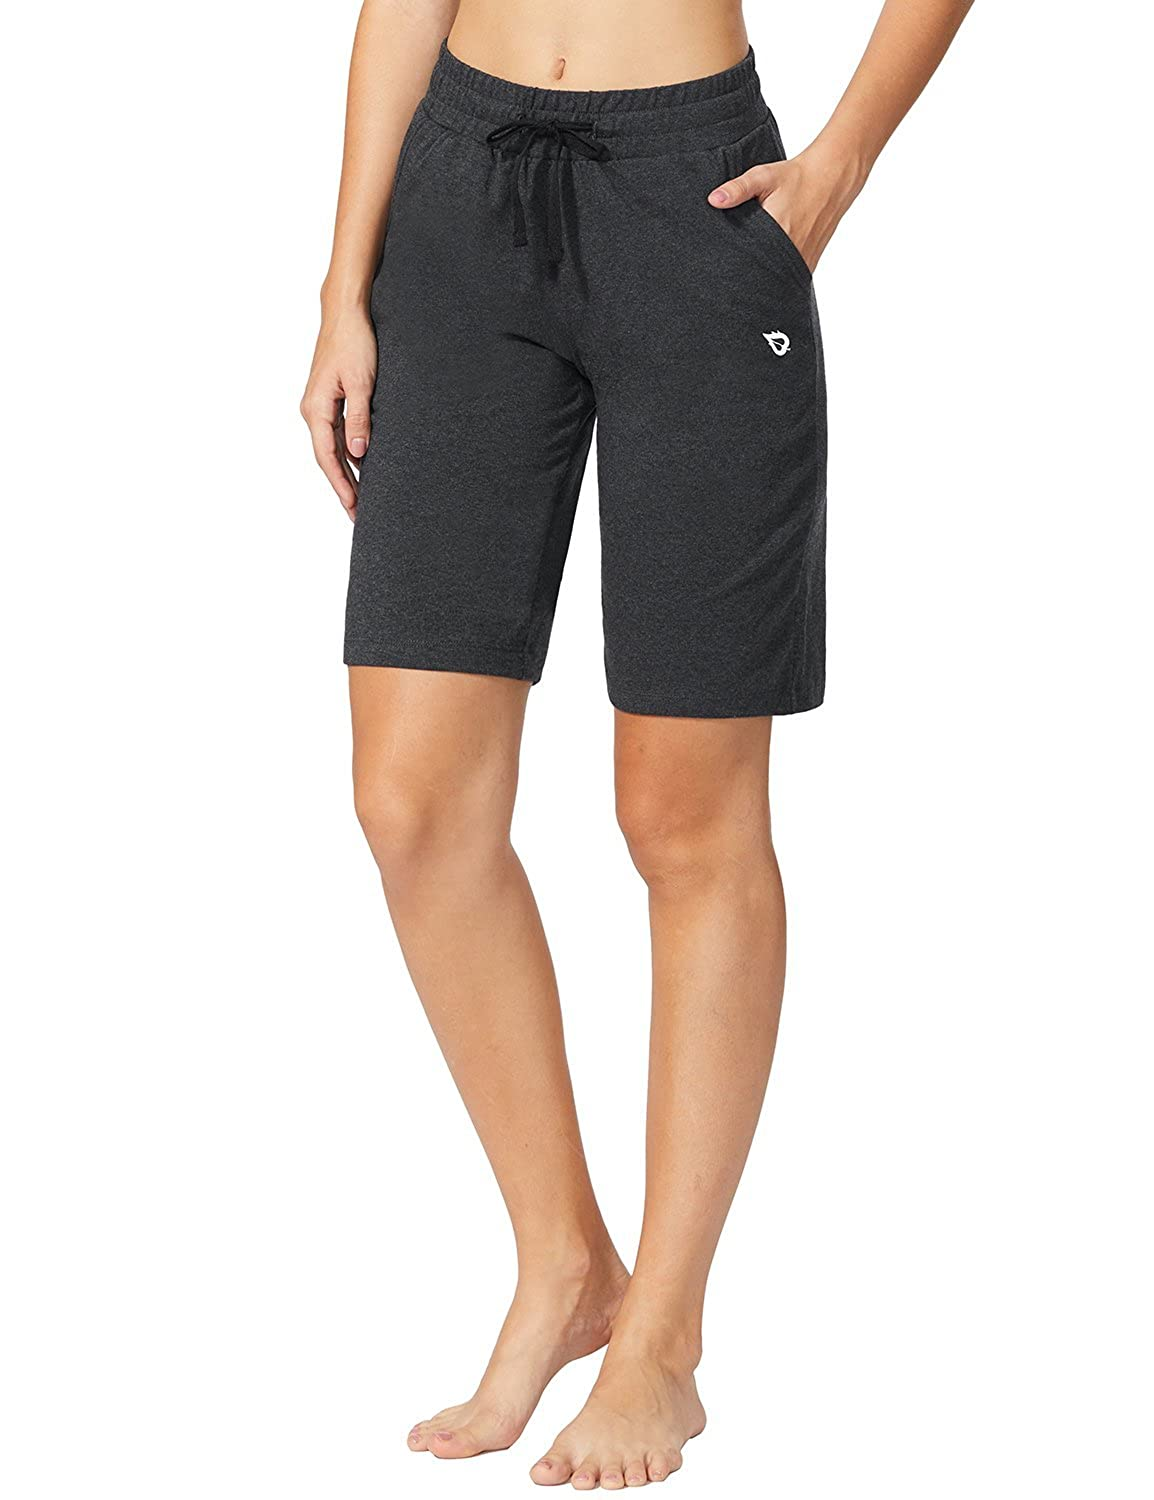 Baleaf Women's Active Yoga Lounge Bermuda Shorts with Pockets Baleafabh1040804117wa